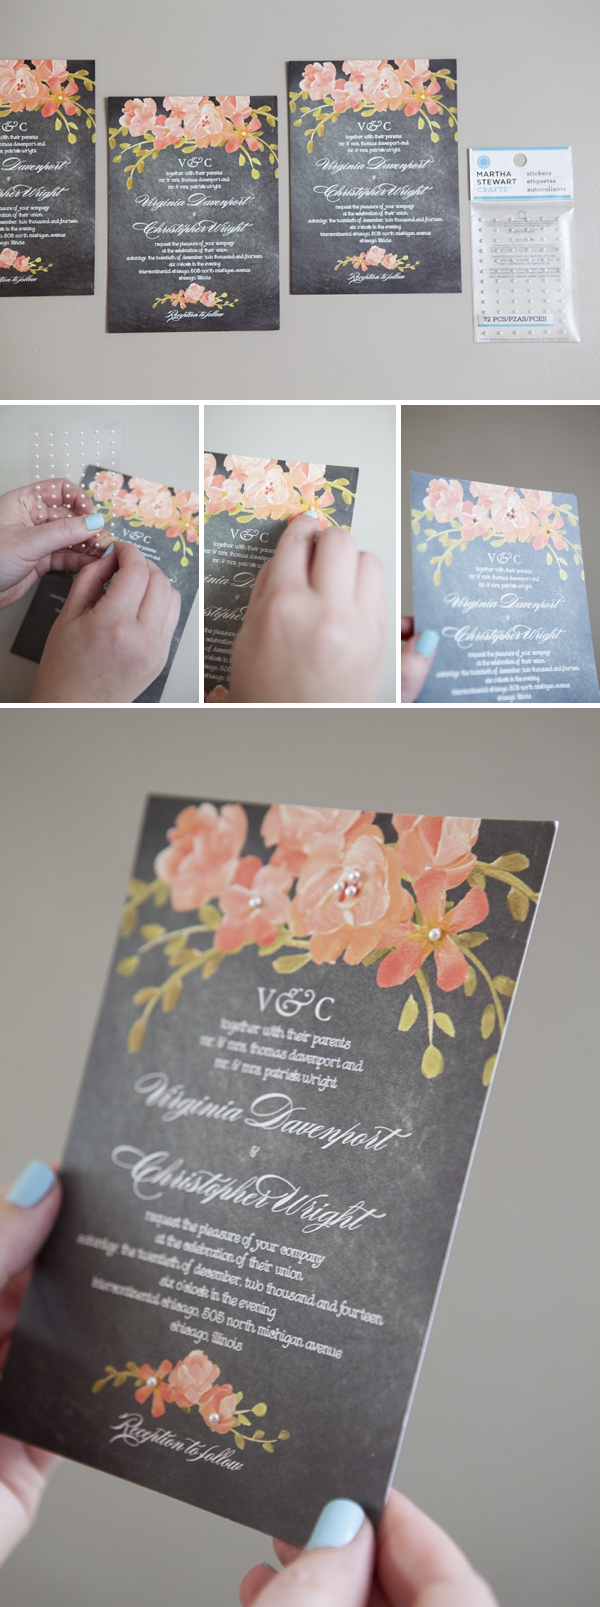 ST-DIY-Wedding-Paper-Divas-DIY-wedding_invitations_0003.jpg